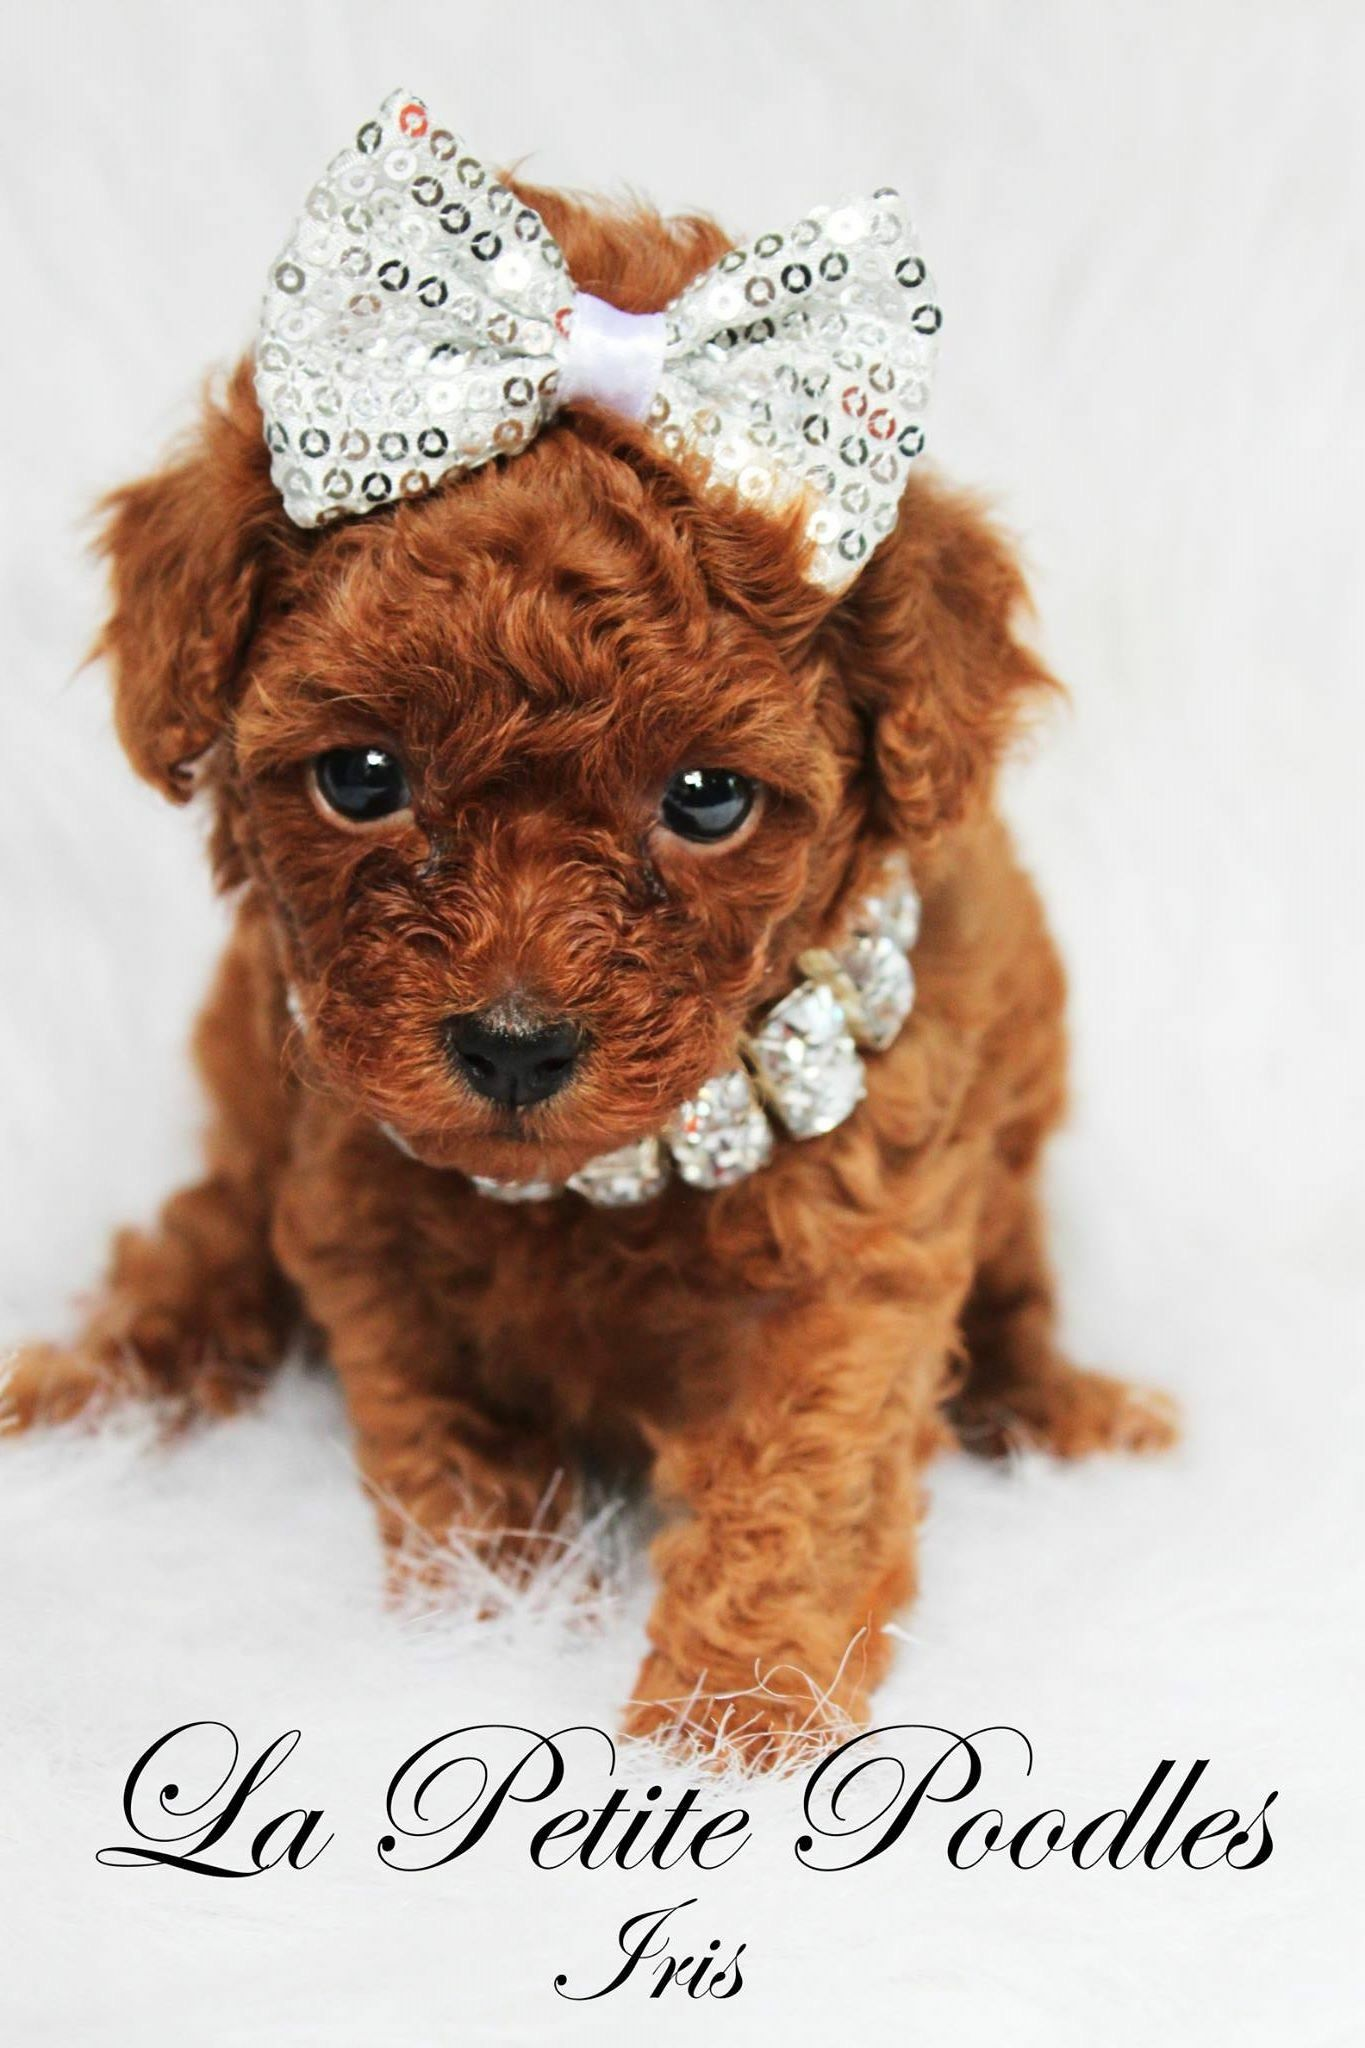 La Petite Poodles Poodle Dogs Animals